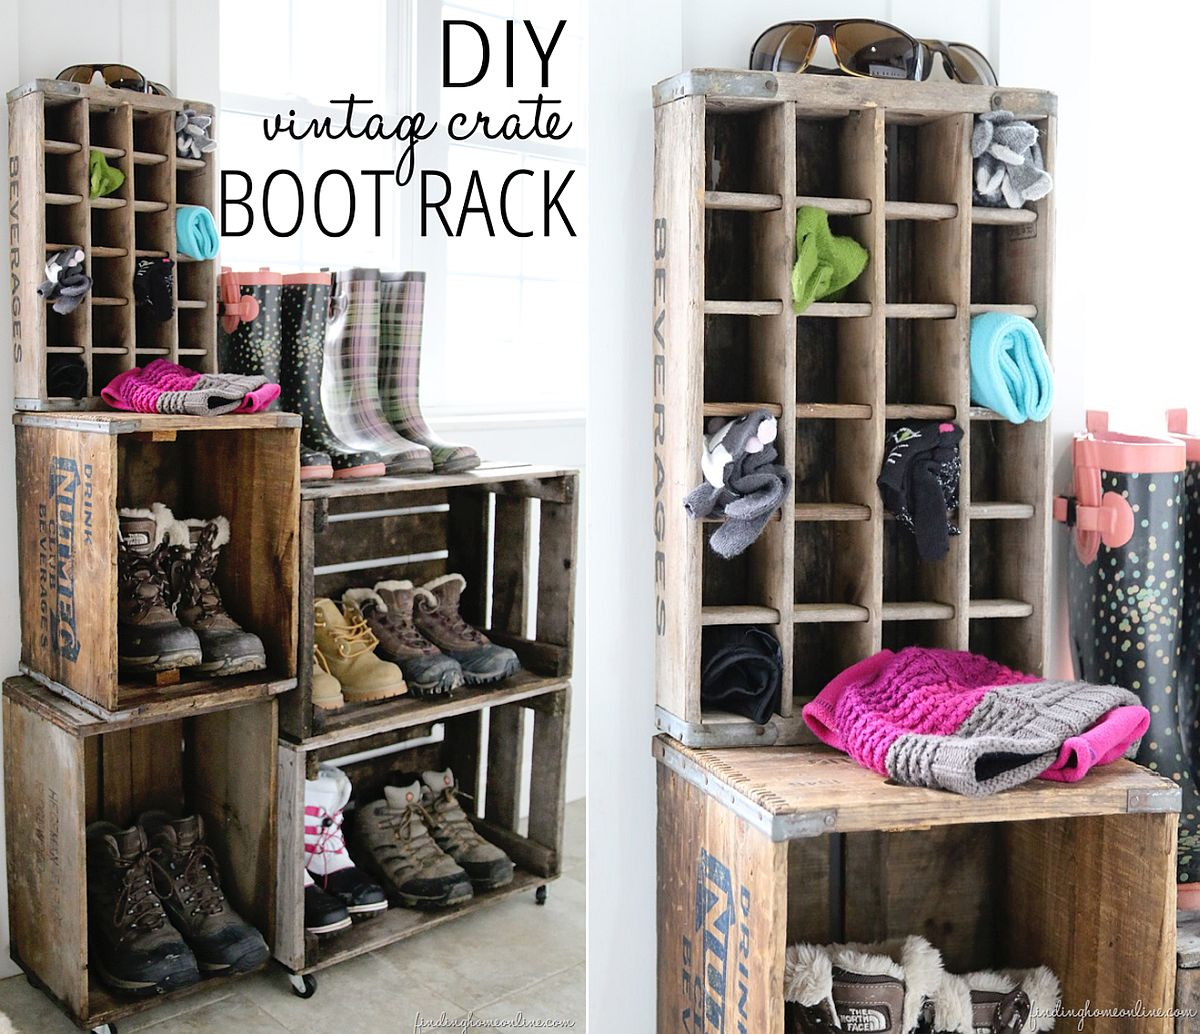 DIY crate vintage boot rack with repurposed charm